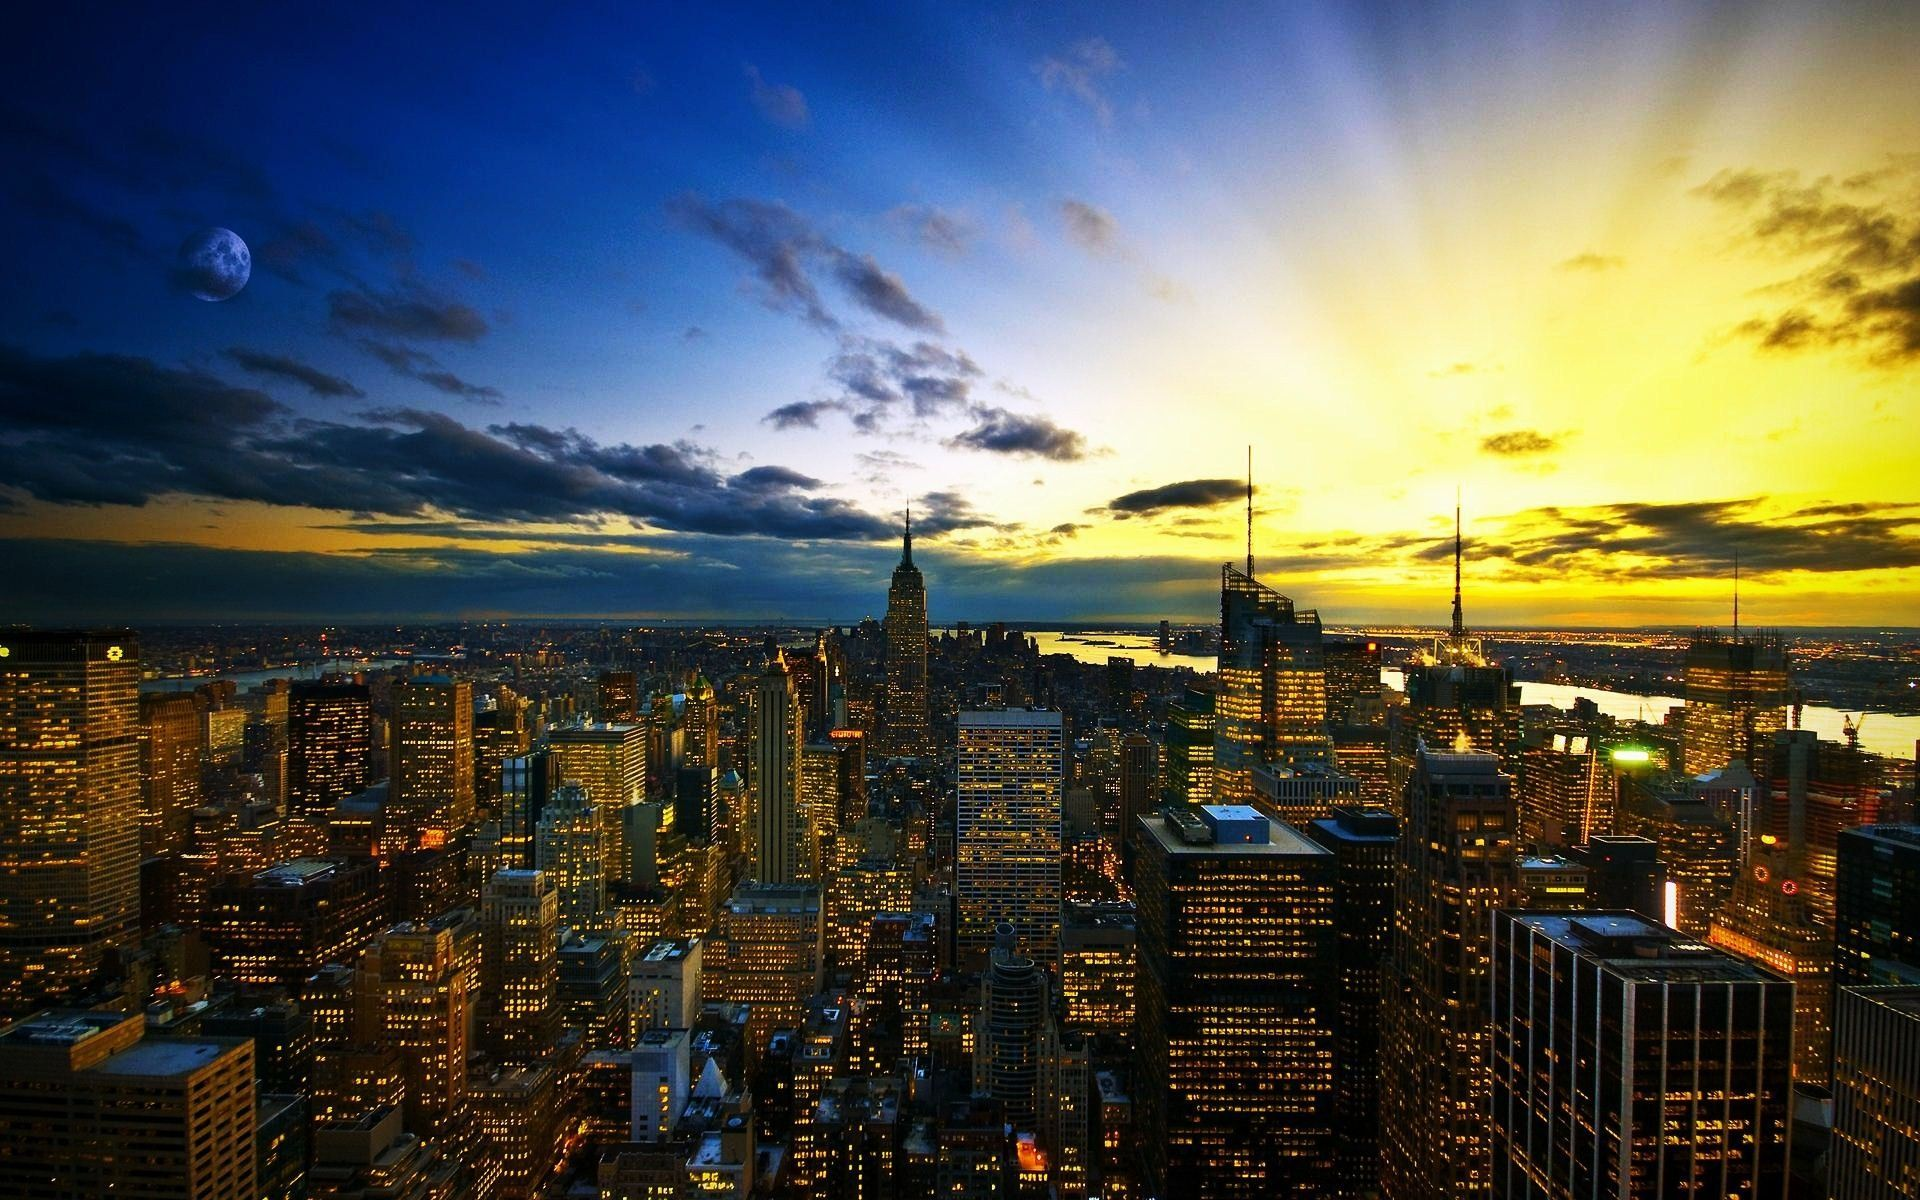 Wallpaper Of New York City Skyline